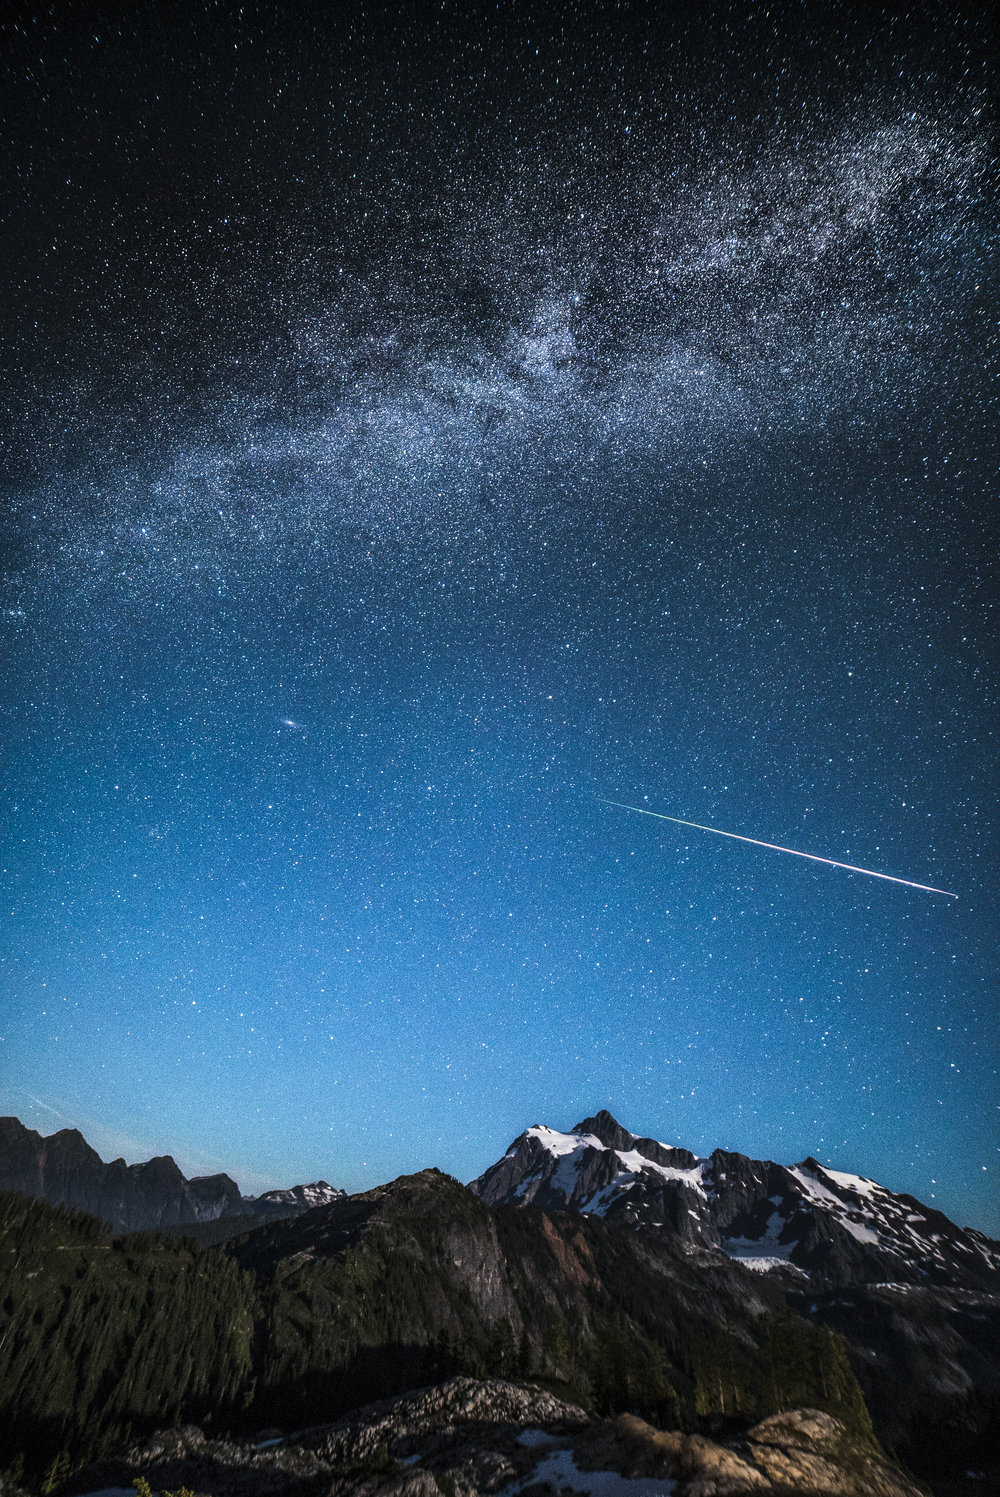 WA - Shuksan - Shooting Star.jpg